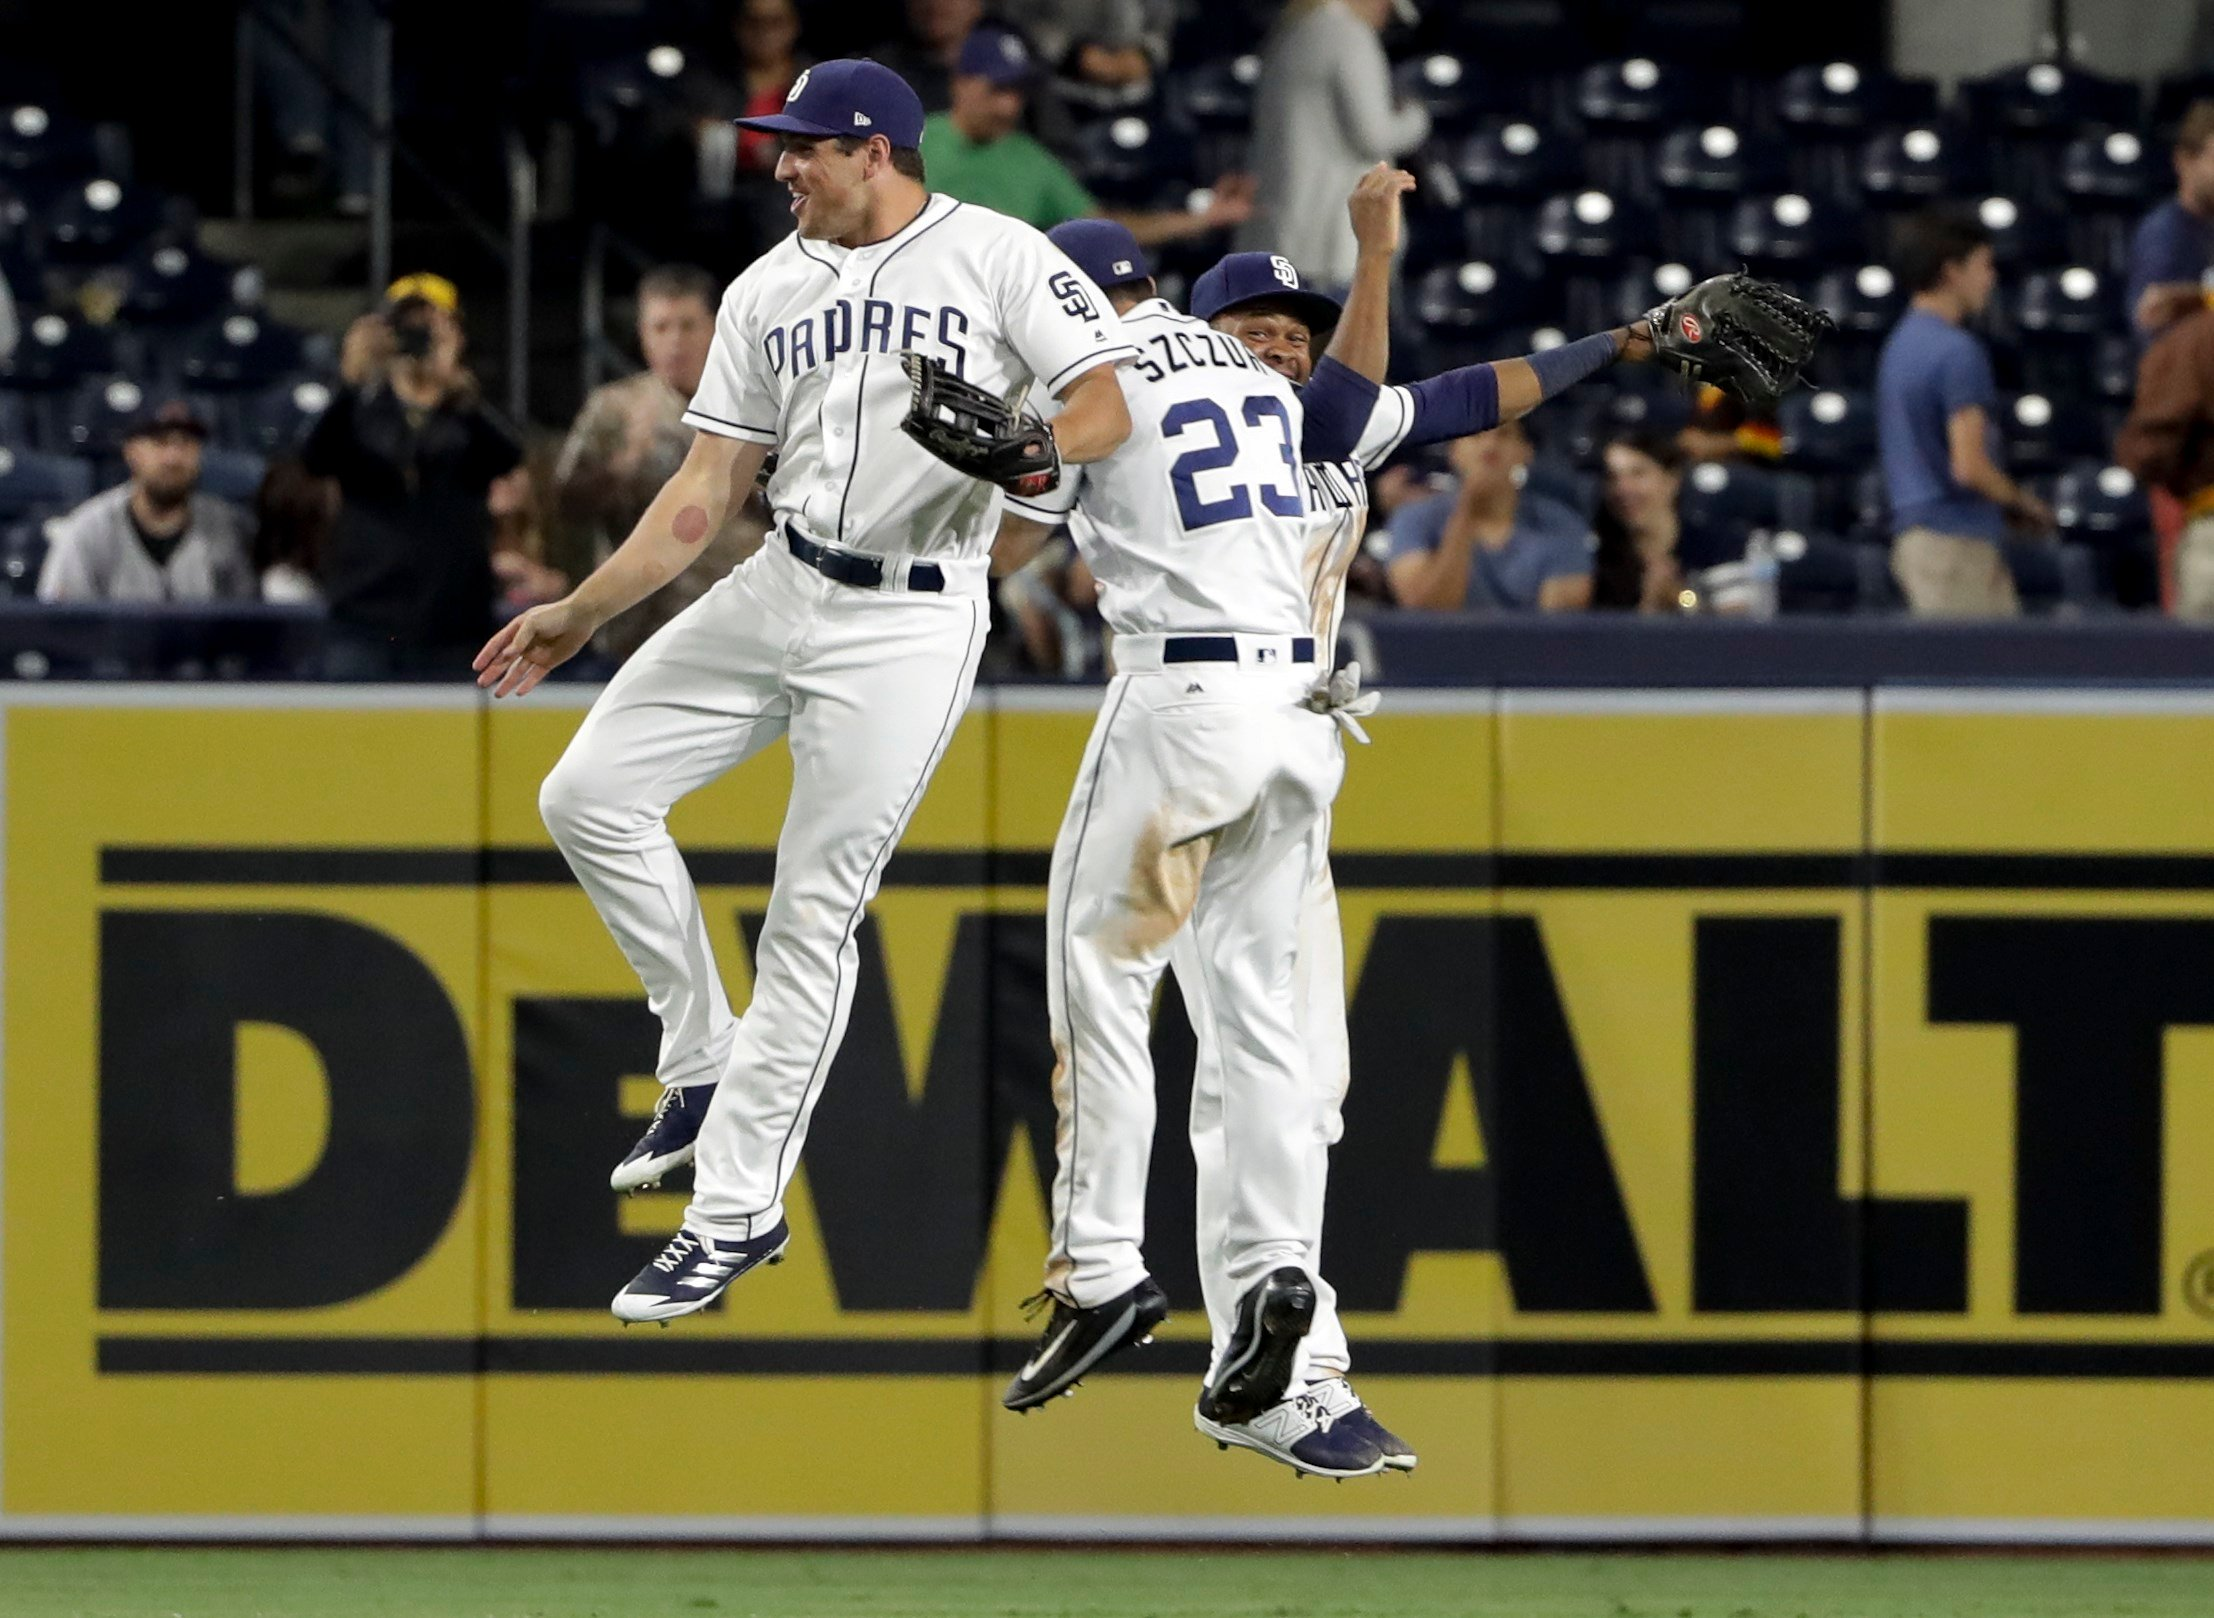 San Diego Padres outfielders Hunter Renfroe, left, Matt Szczur, center, and Manuel Margot celebrate after the Padres defeated the Atlanta Braves 6-0 in a baseball game Thursday, June 29, 2017, in San Diego. (AP Photo/Gregory Bull)